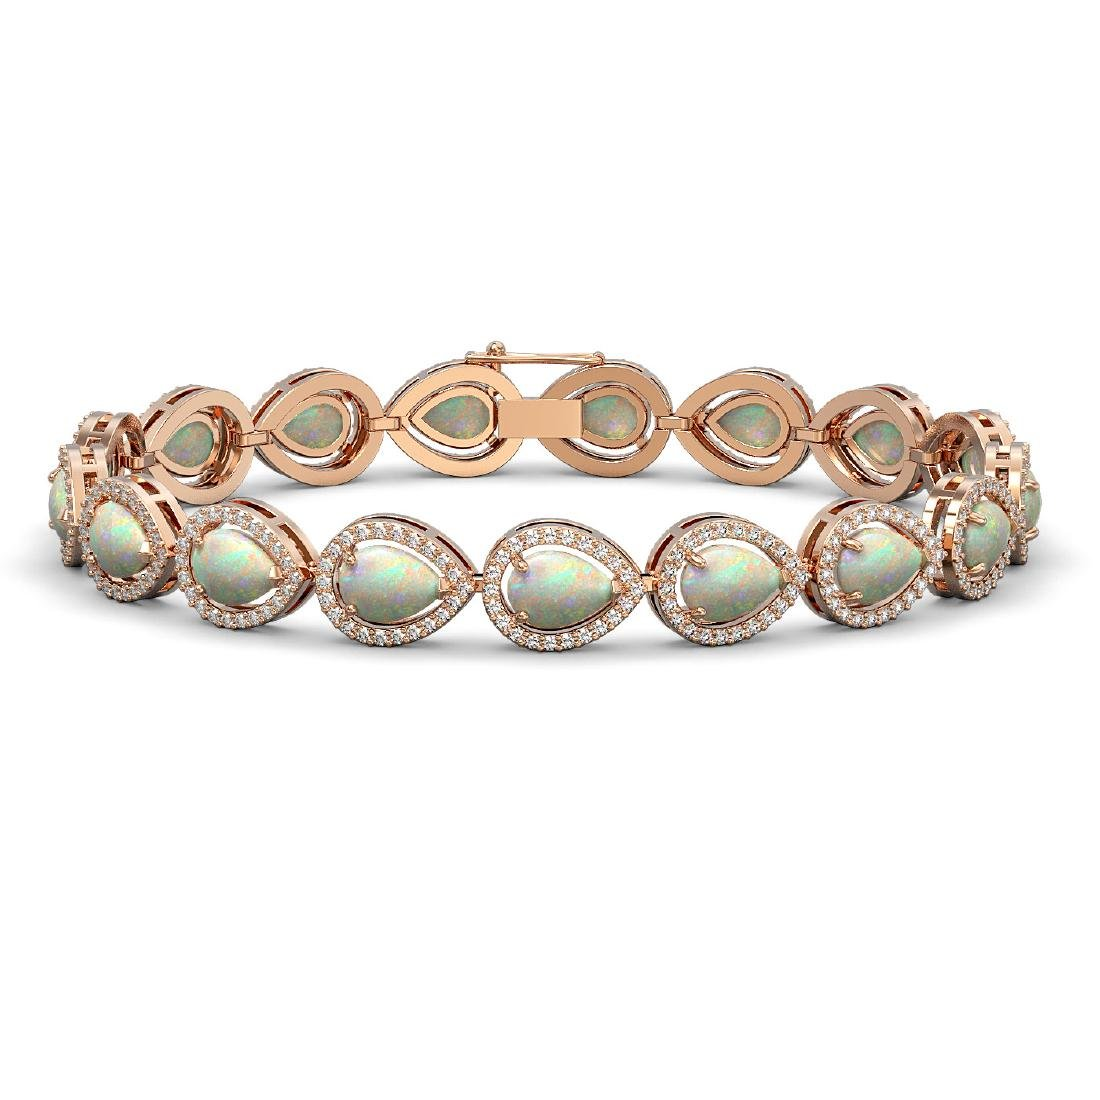 13.19 CTW Opal & Diamond Halo Bracelet 10K Rose Gold